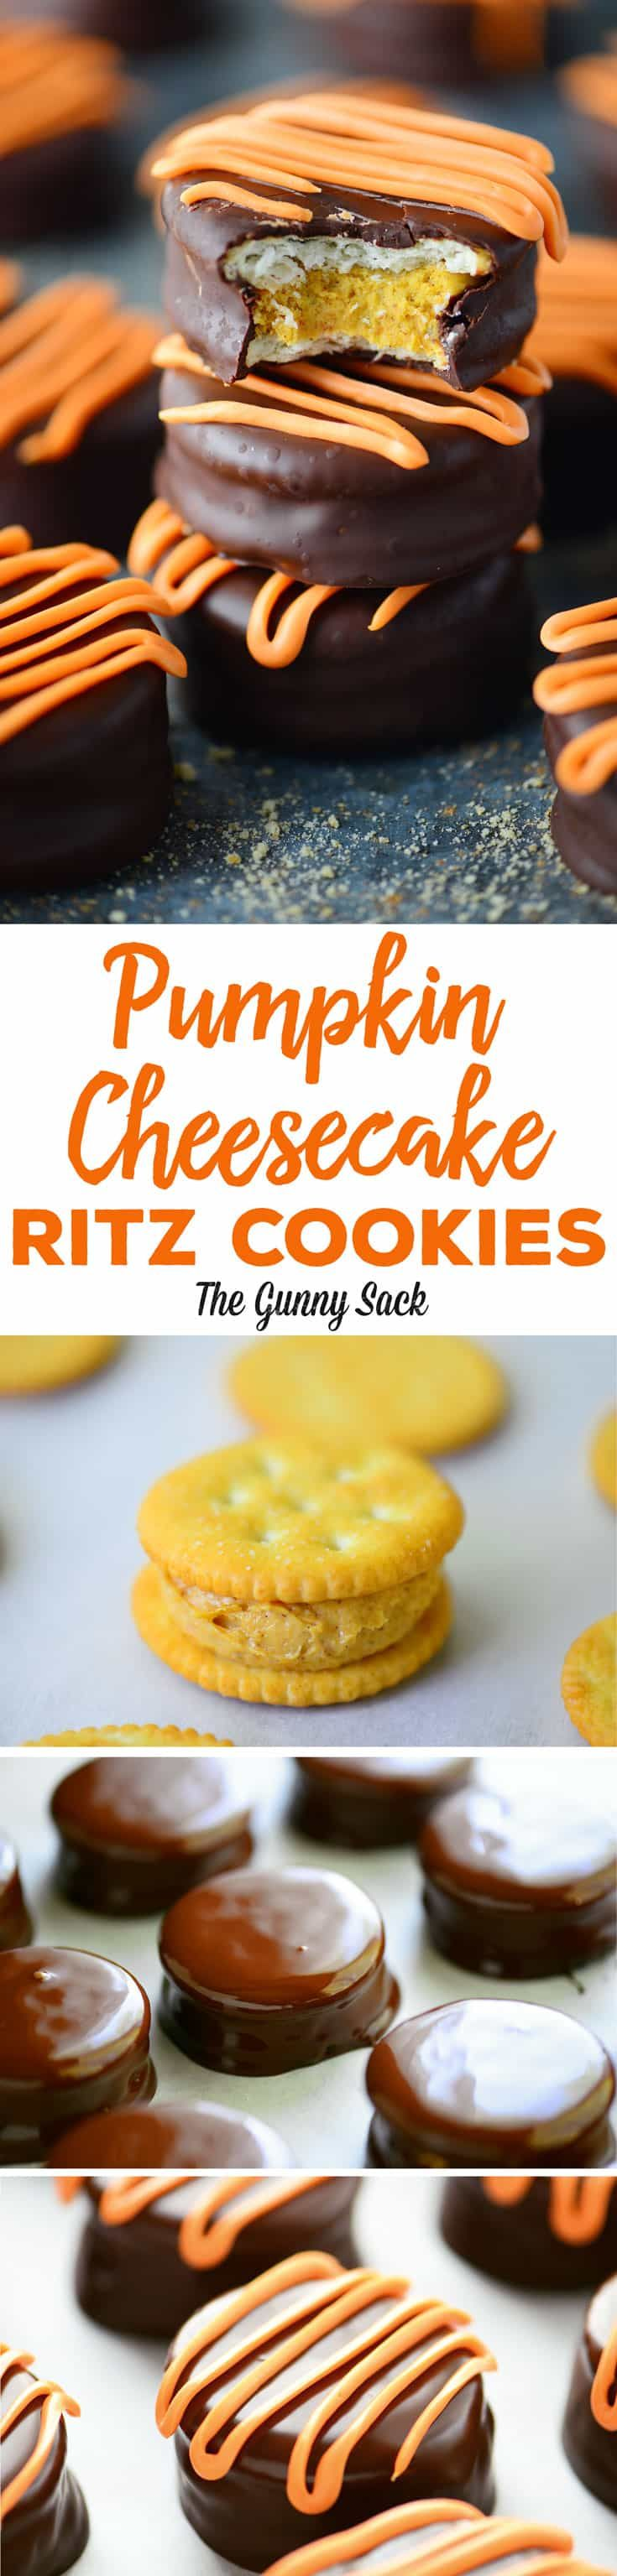 Pumpkin Cheesecake Ritz Cookies are like a pumpkin truffle inside Ritz crackers. The dark chocolate is the perfect compliment to the sweet pumpkin filling. #pumpkinrecipes #cookies